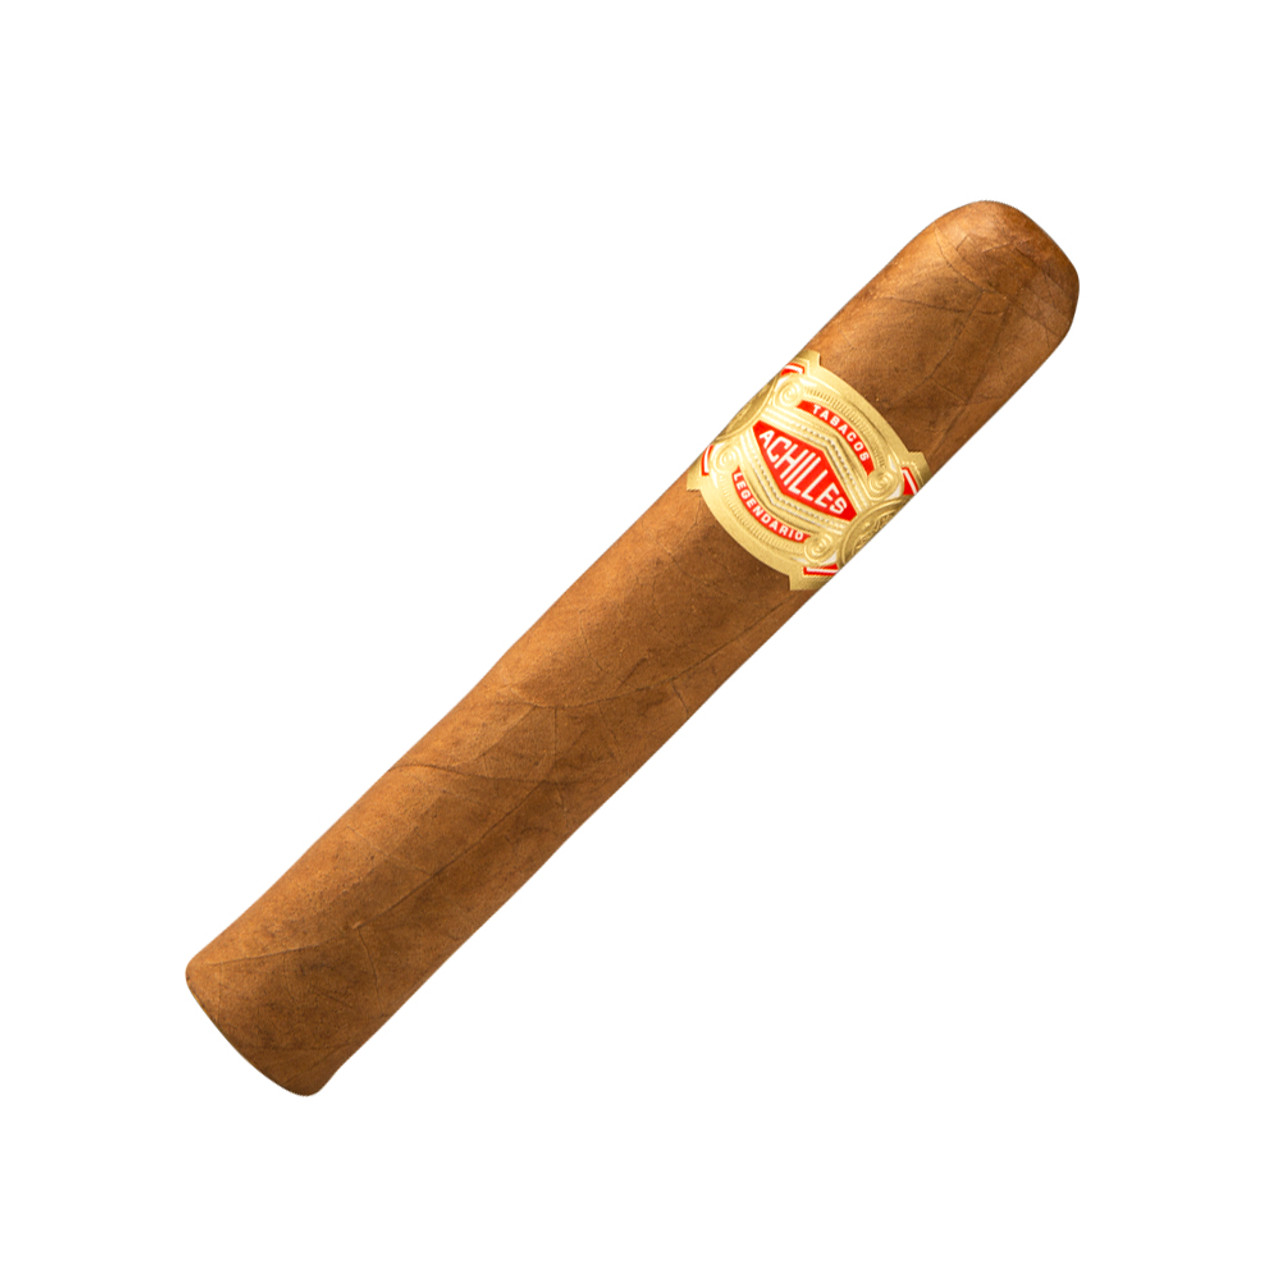 Curivari Achilles La Lliada No. 7 Cigars - 5.5 x 56 (Box of 10)